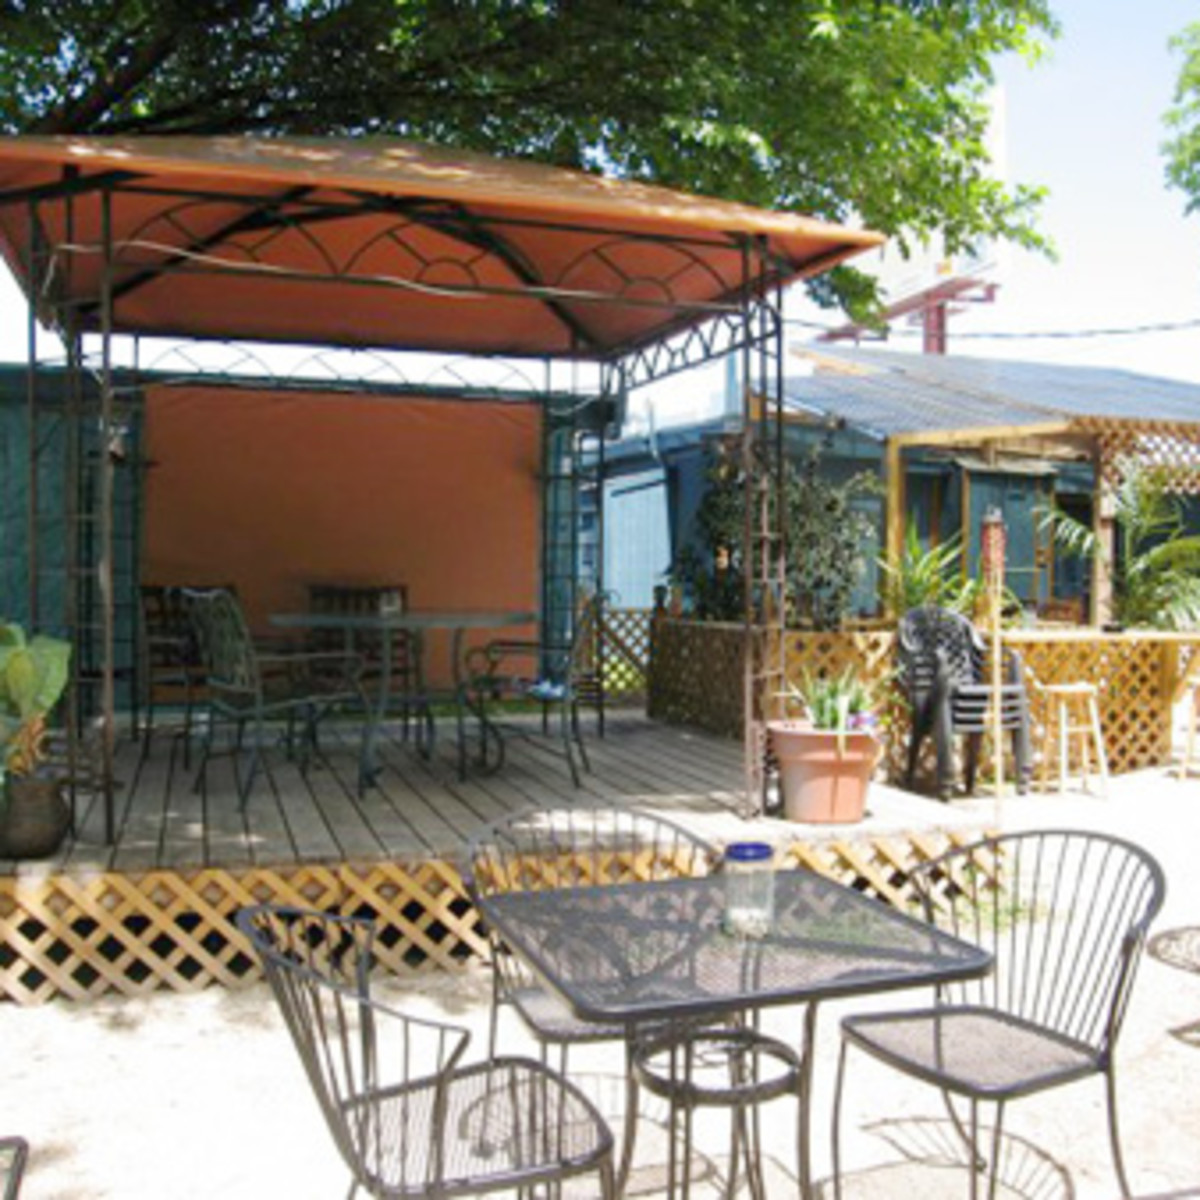 Austin_photo: places_food_phara's_patio